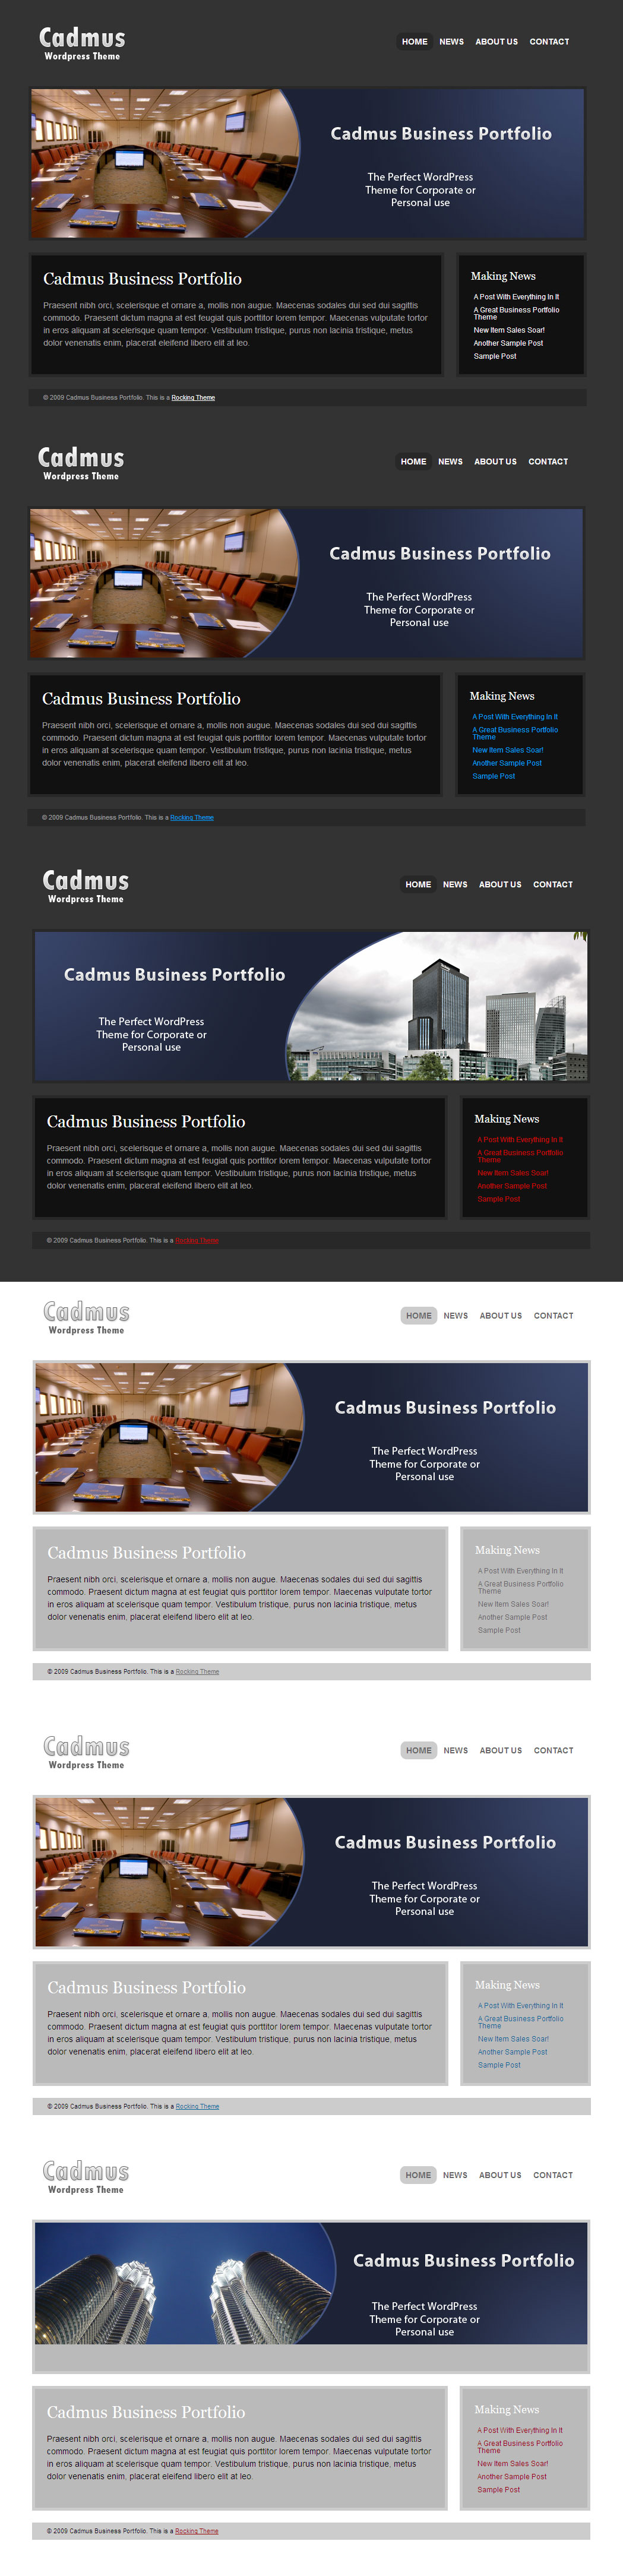 Cadmus Business Portfolio - 6 in 1 WordPress Theme - 6 Colour Schemes available to choose from. Easily changed form the Theme Options Page